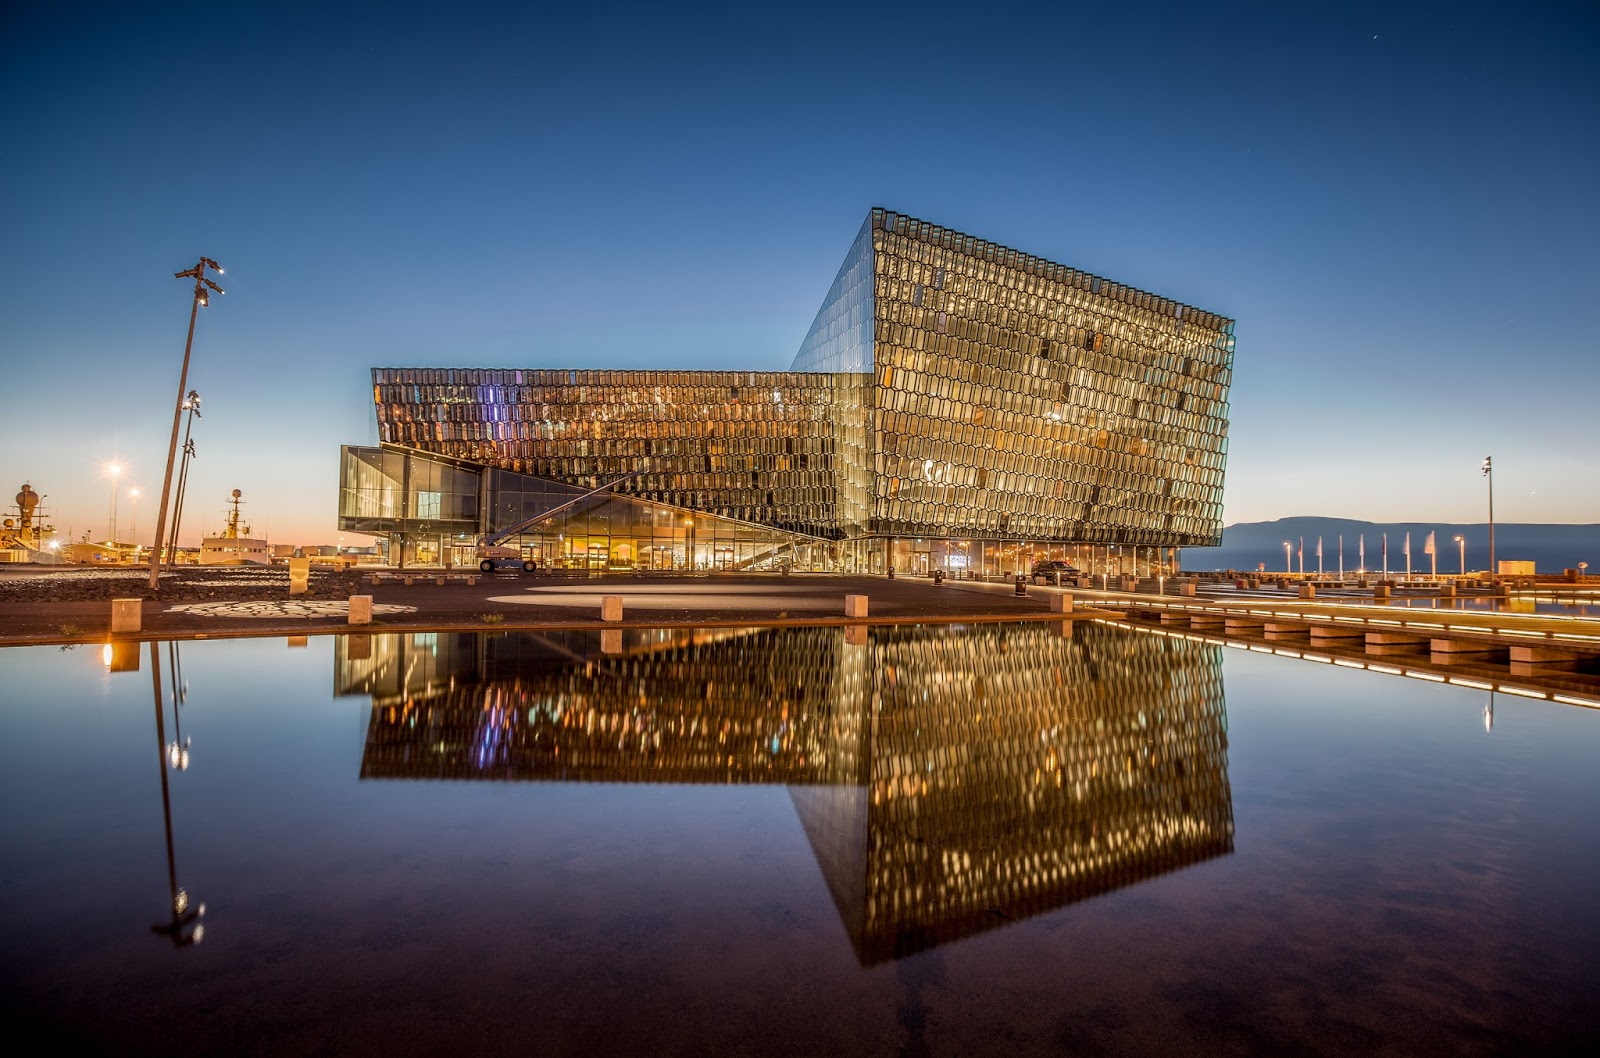 Family friendly Iceland: Harpa Concert Hall, Reykjavik